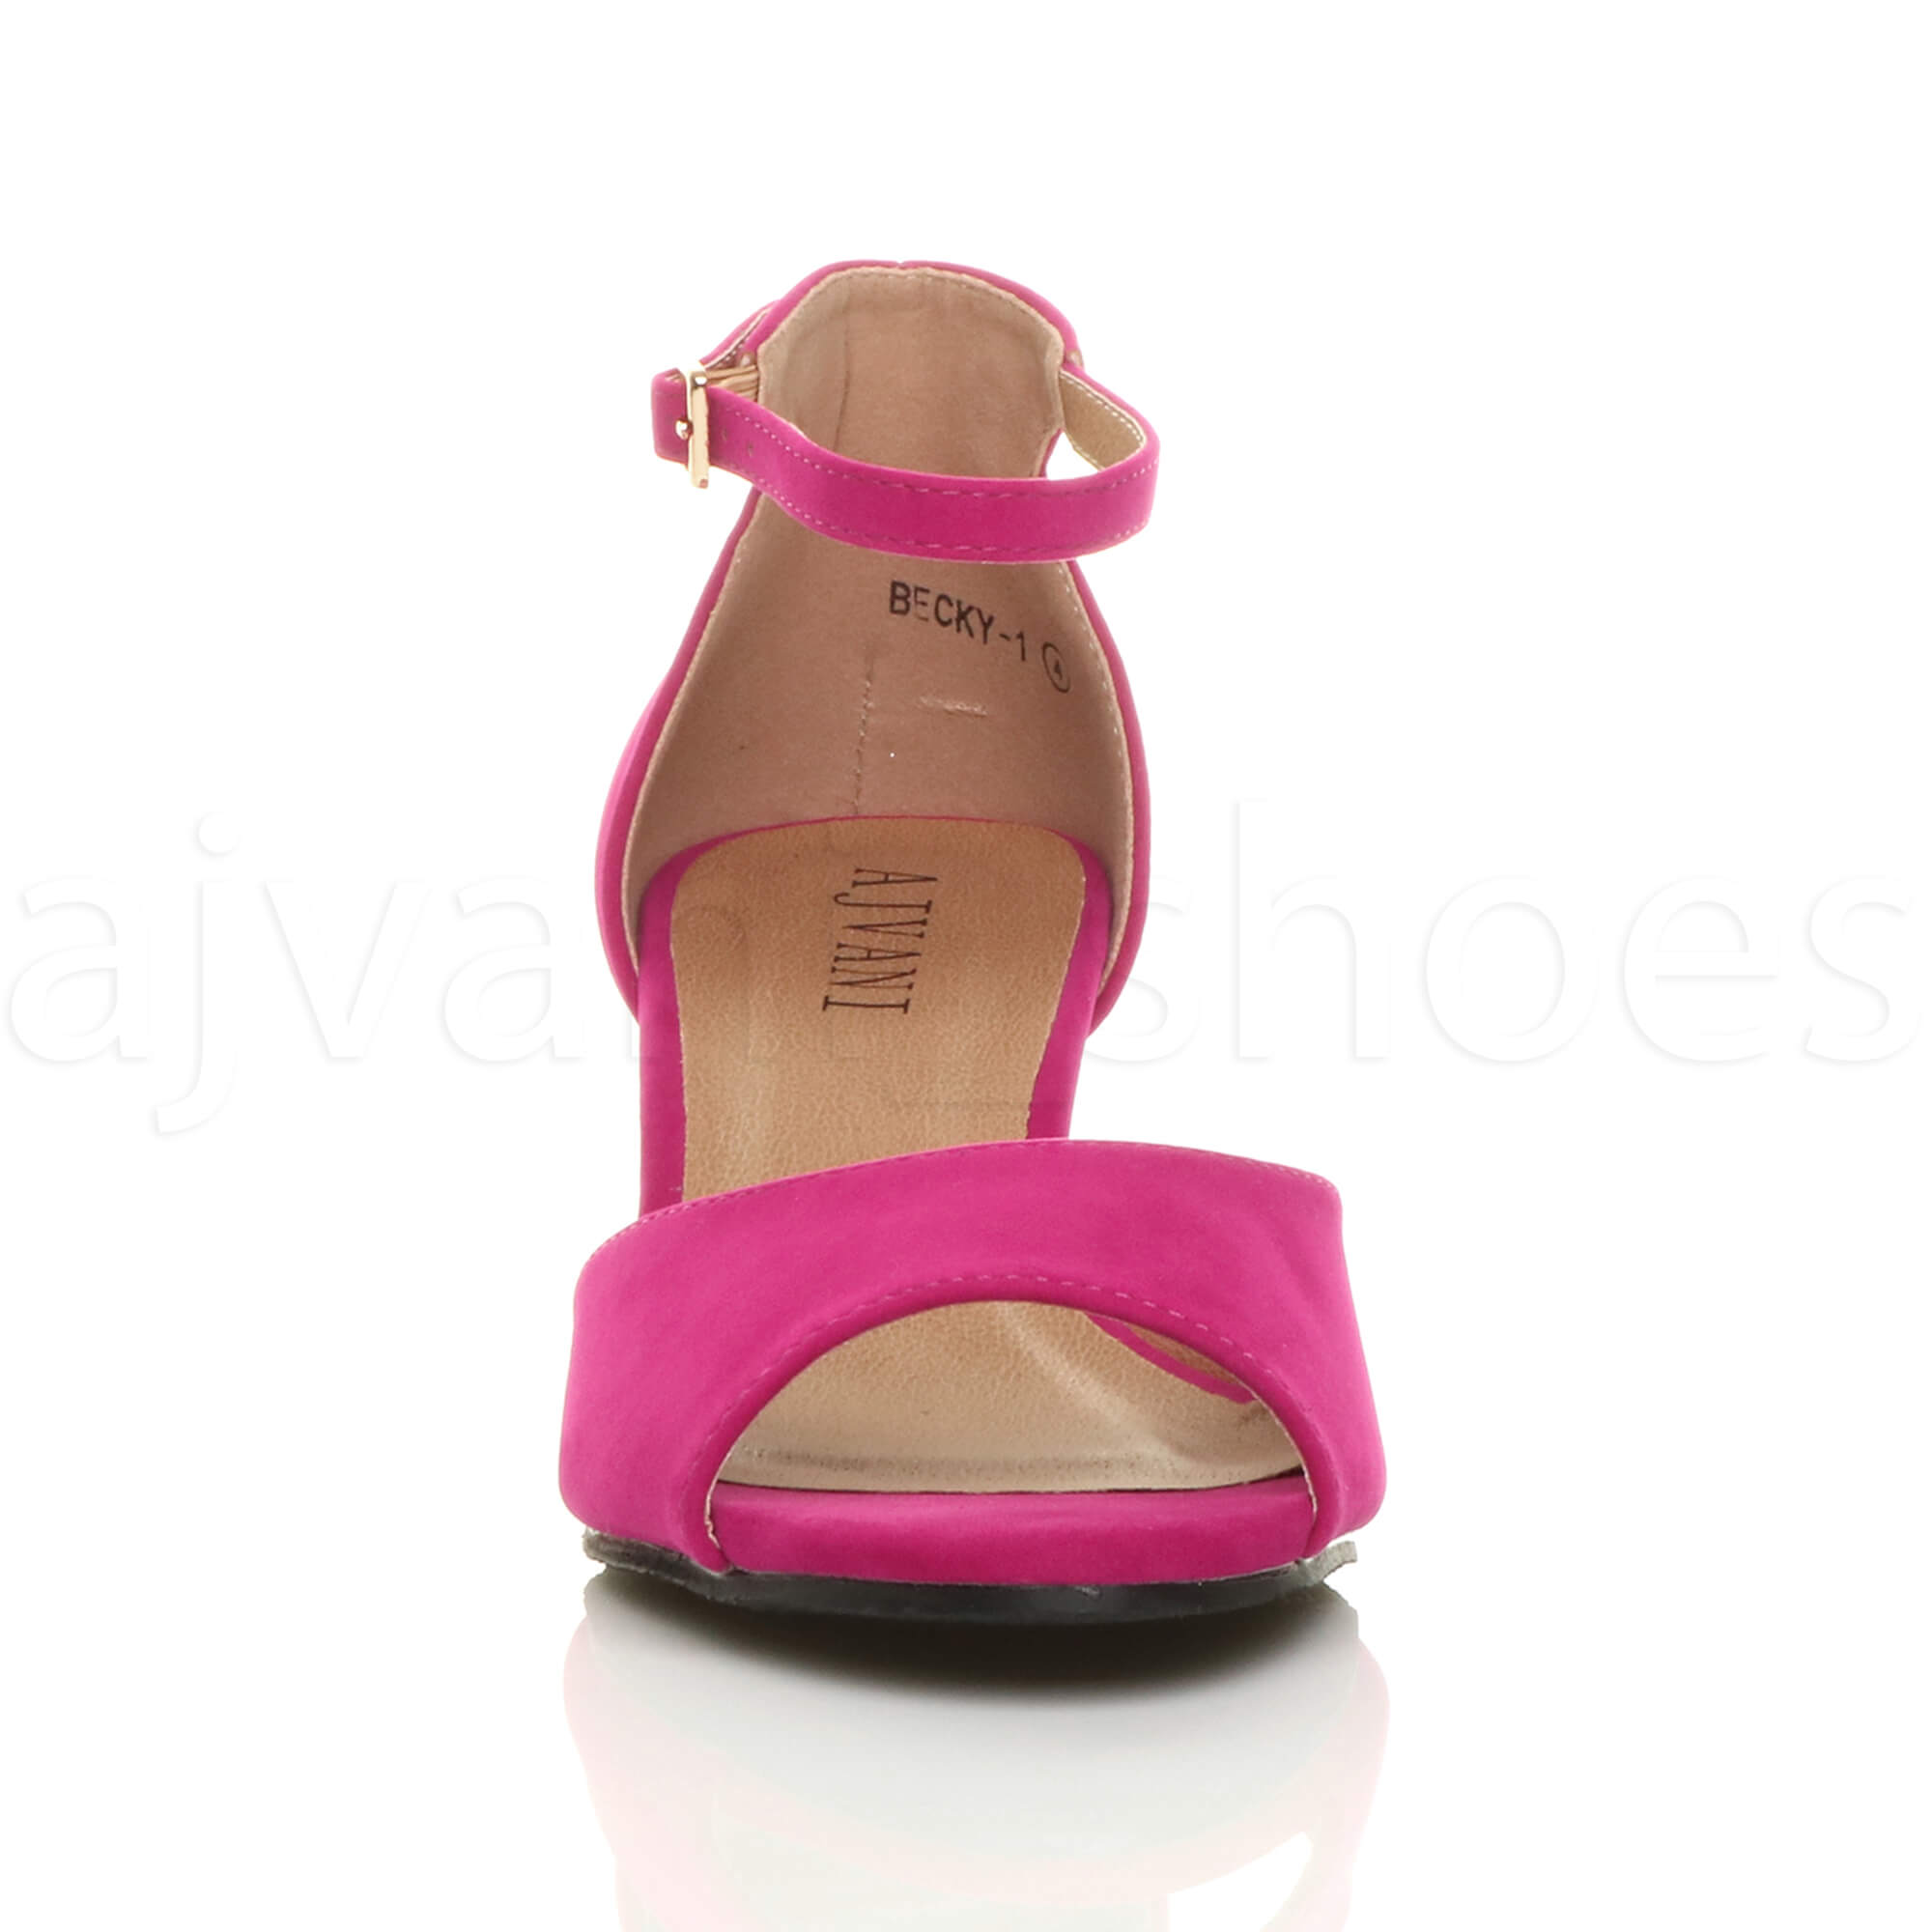 WOMENS-LADIES-LOW-MID-WEDGE-HEEL-ANKLE-STRAP-SMART-CASUAL-EVENING-SANDALS-SIZE thumbnail 47